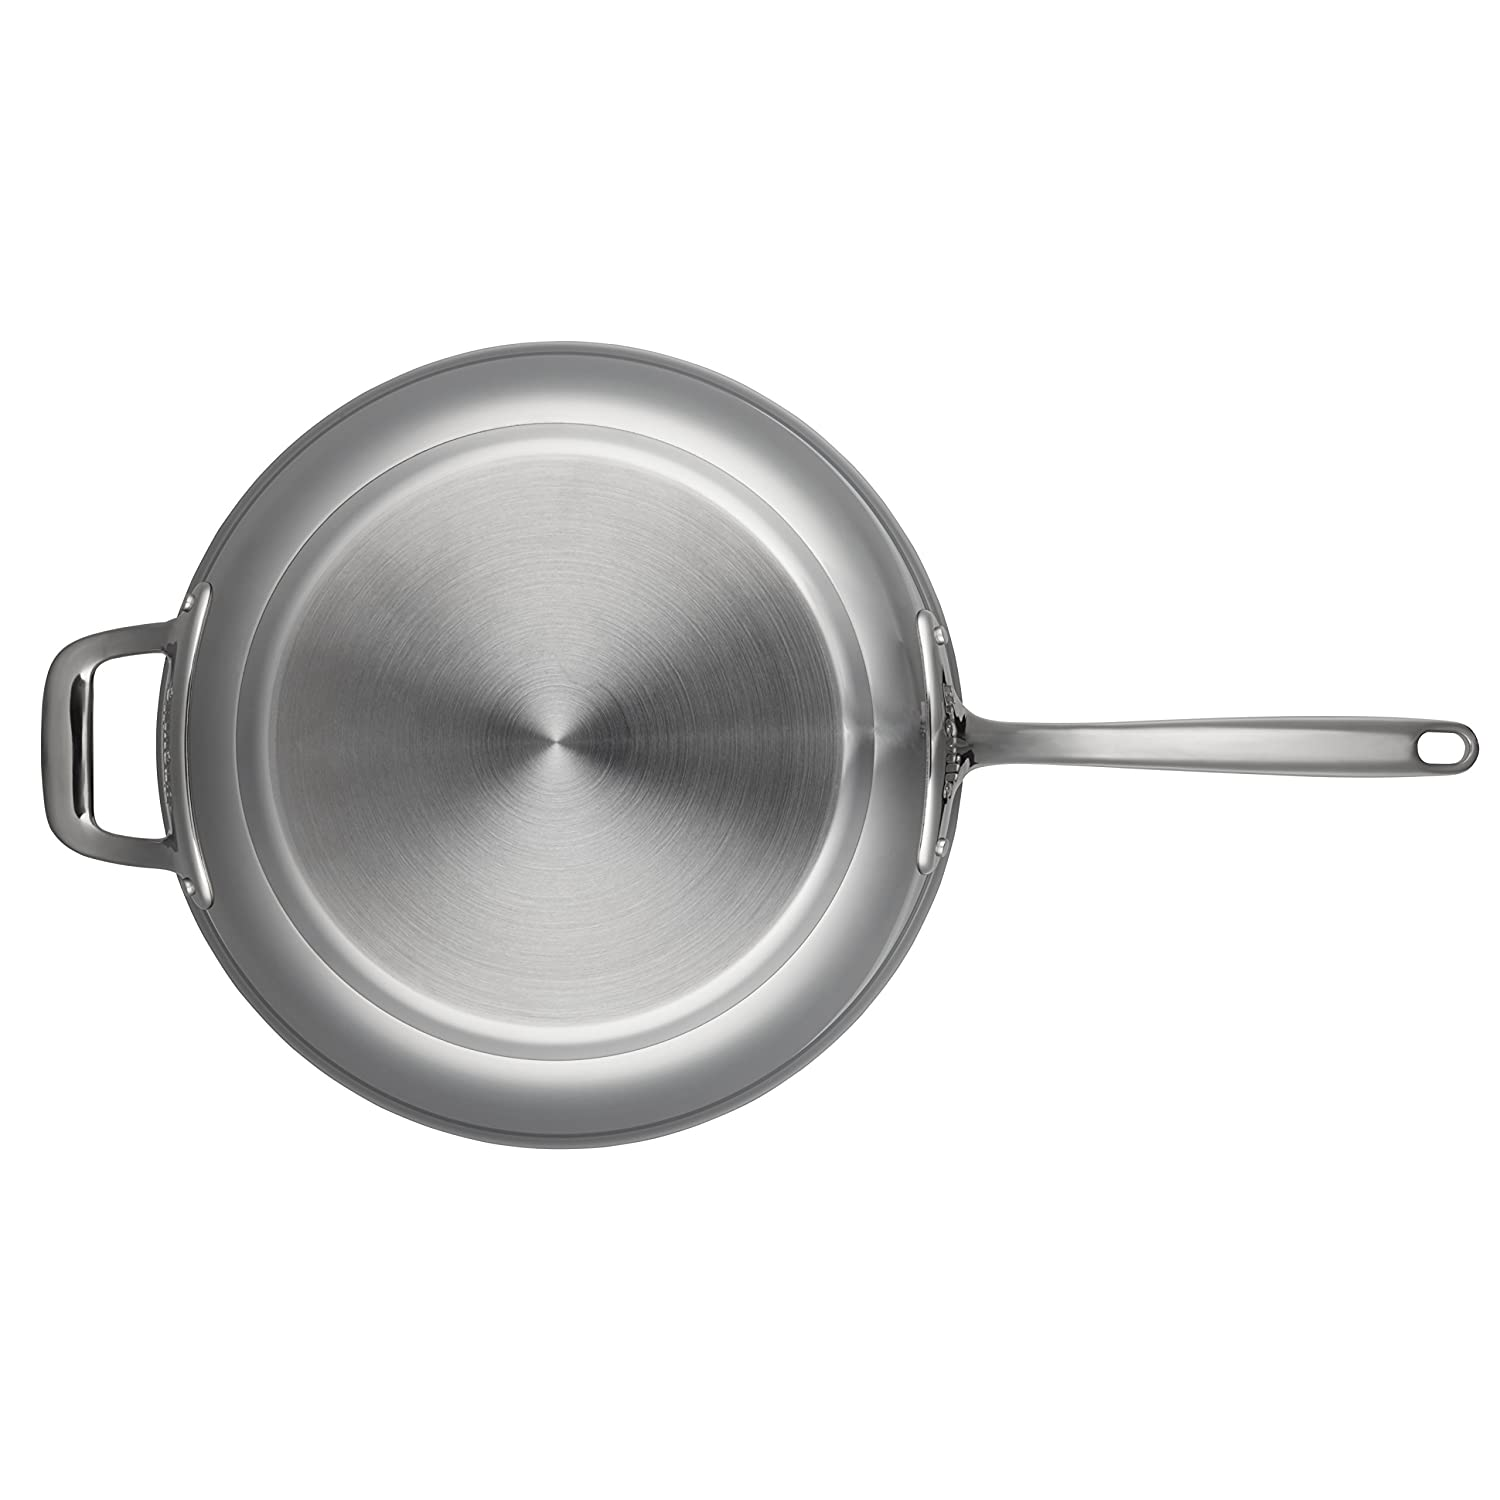 Breville Thermal Pro Clad Stainless Steel 10-Inch Fry Pan 32074